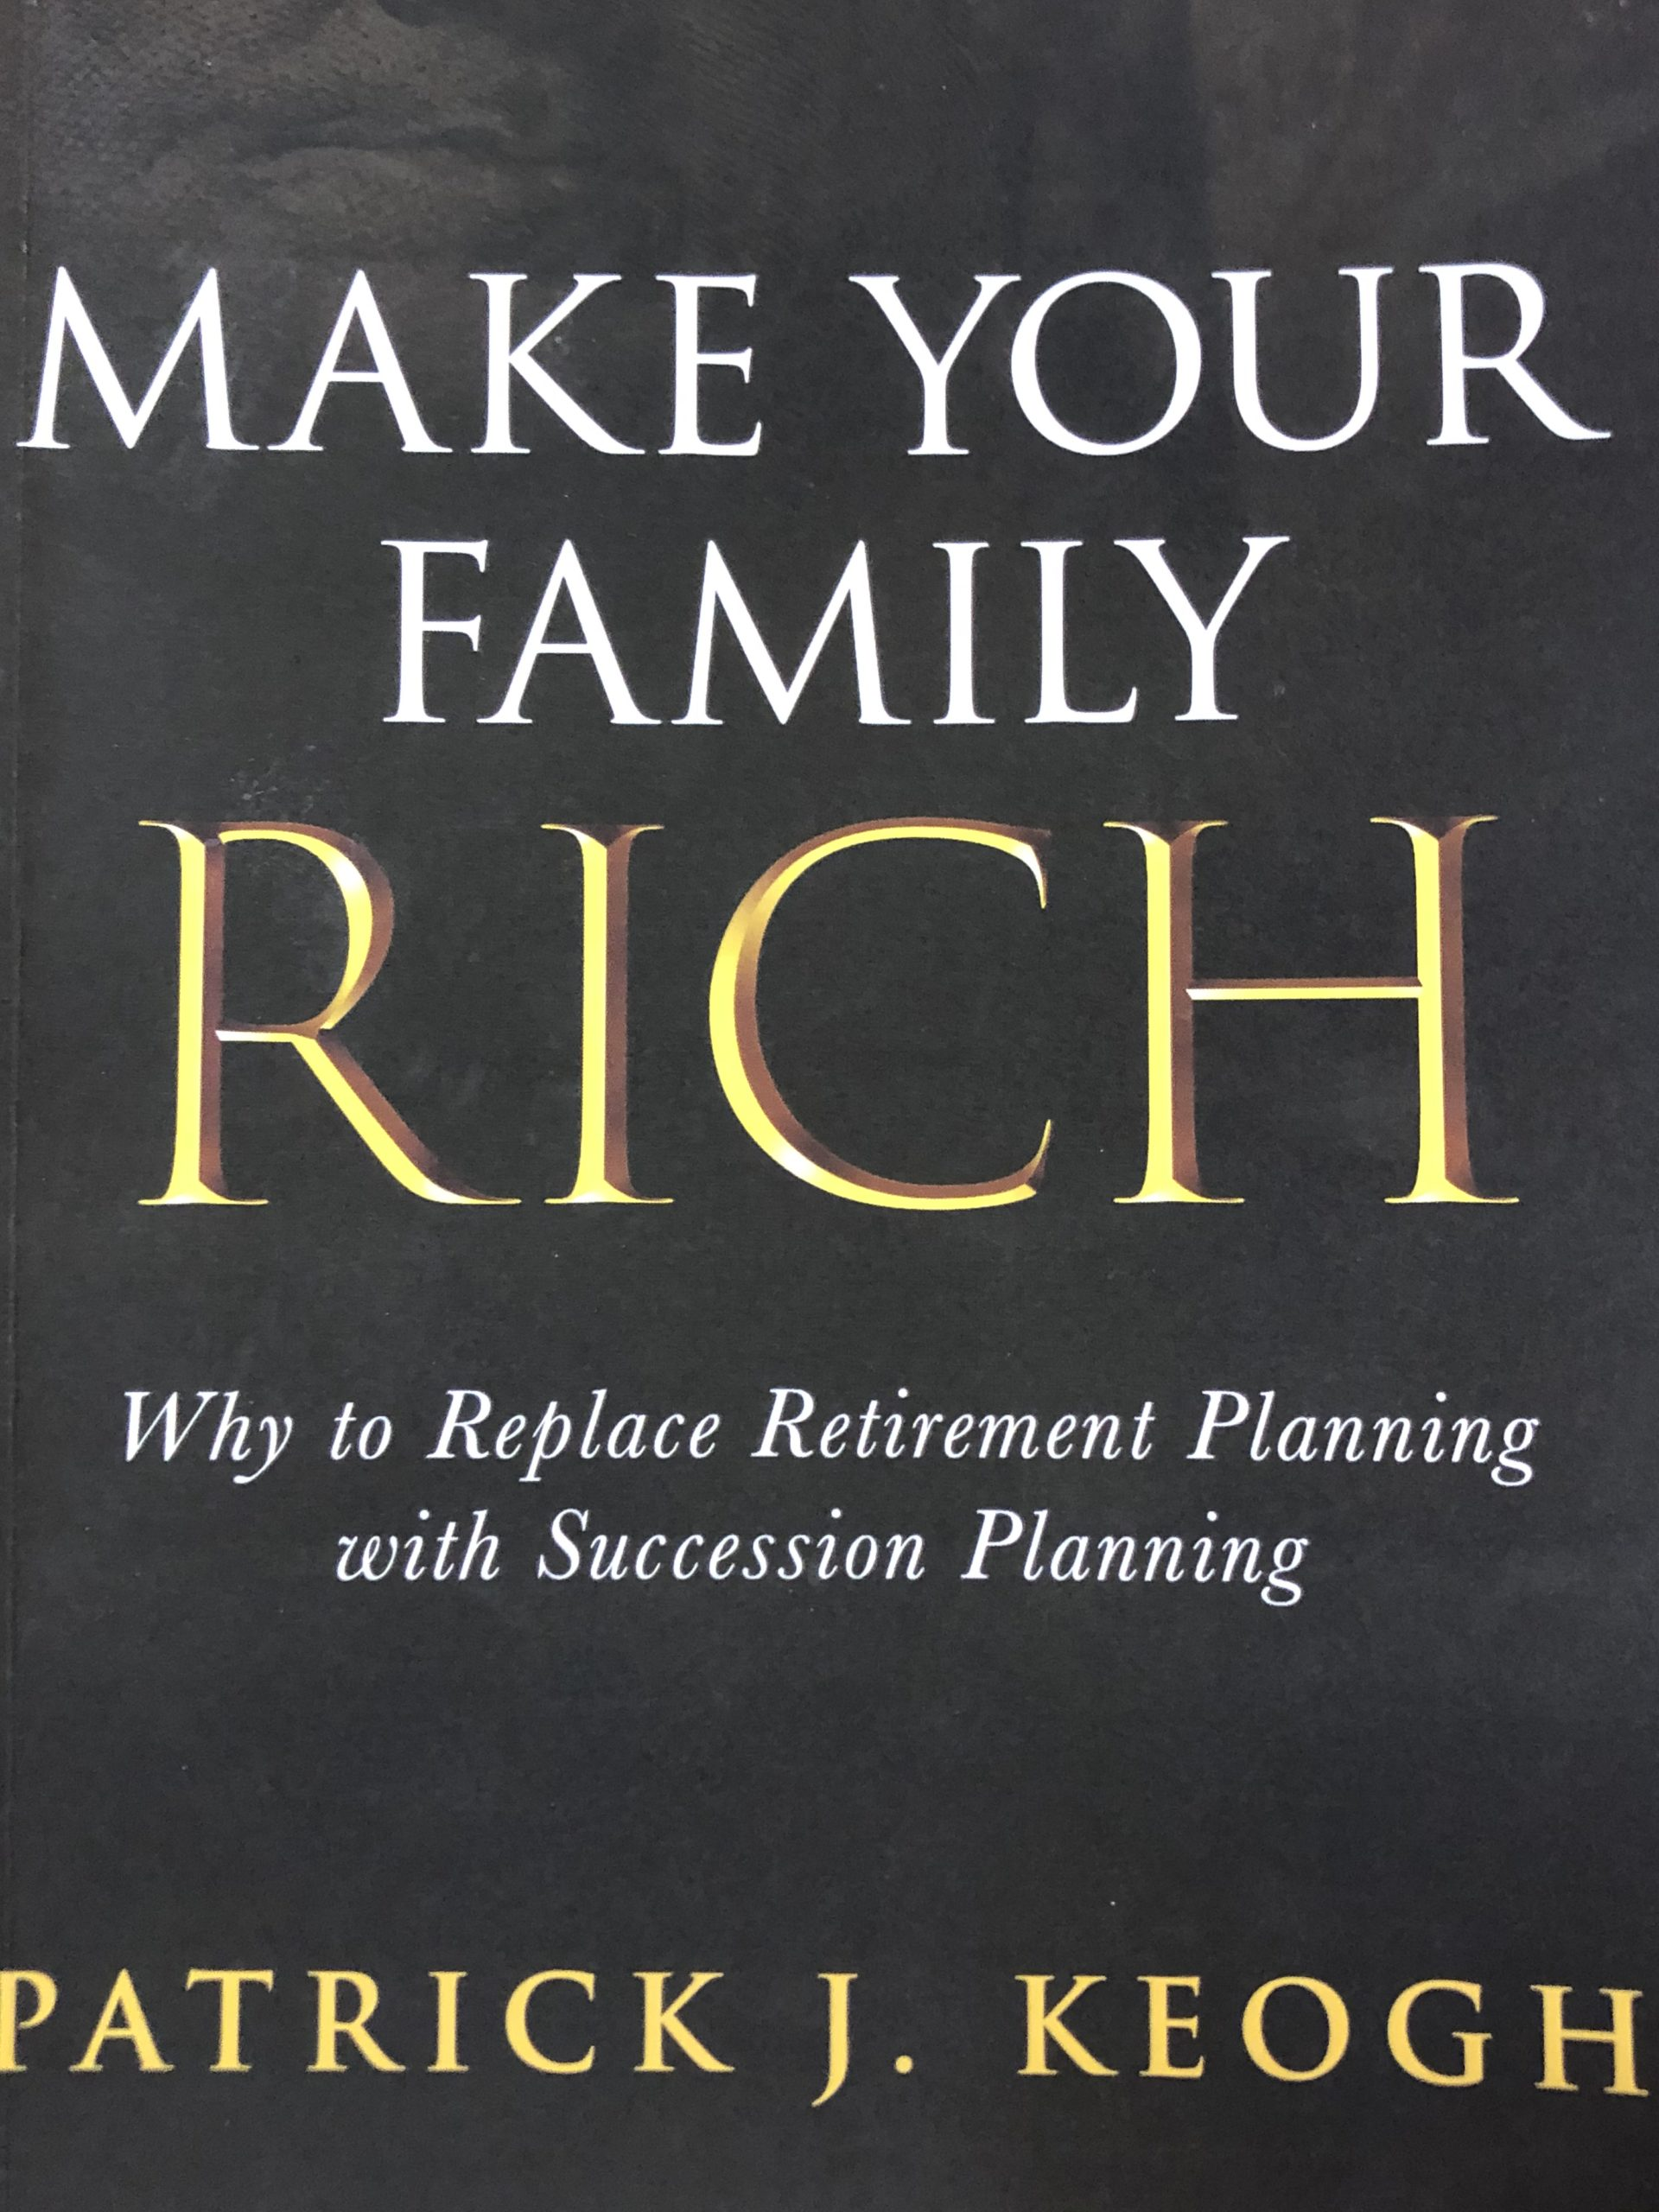 Want To Get Rich And Keep It All In The Family? Then Buy Local Resident Pat Keogh's New Book